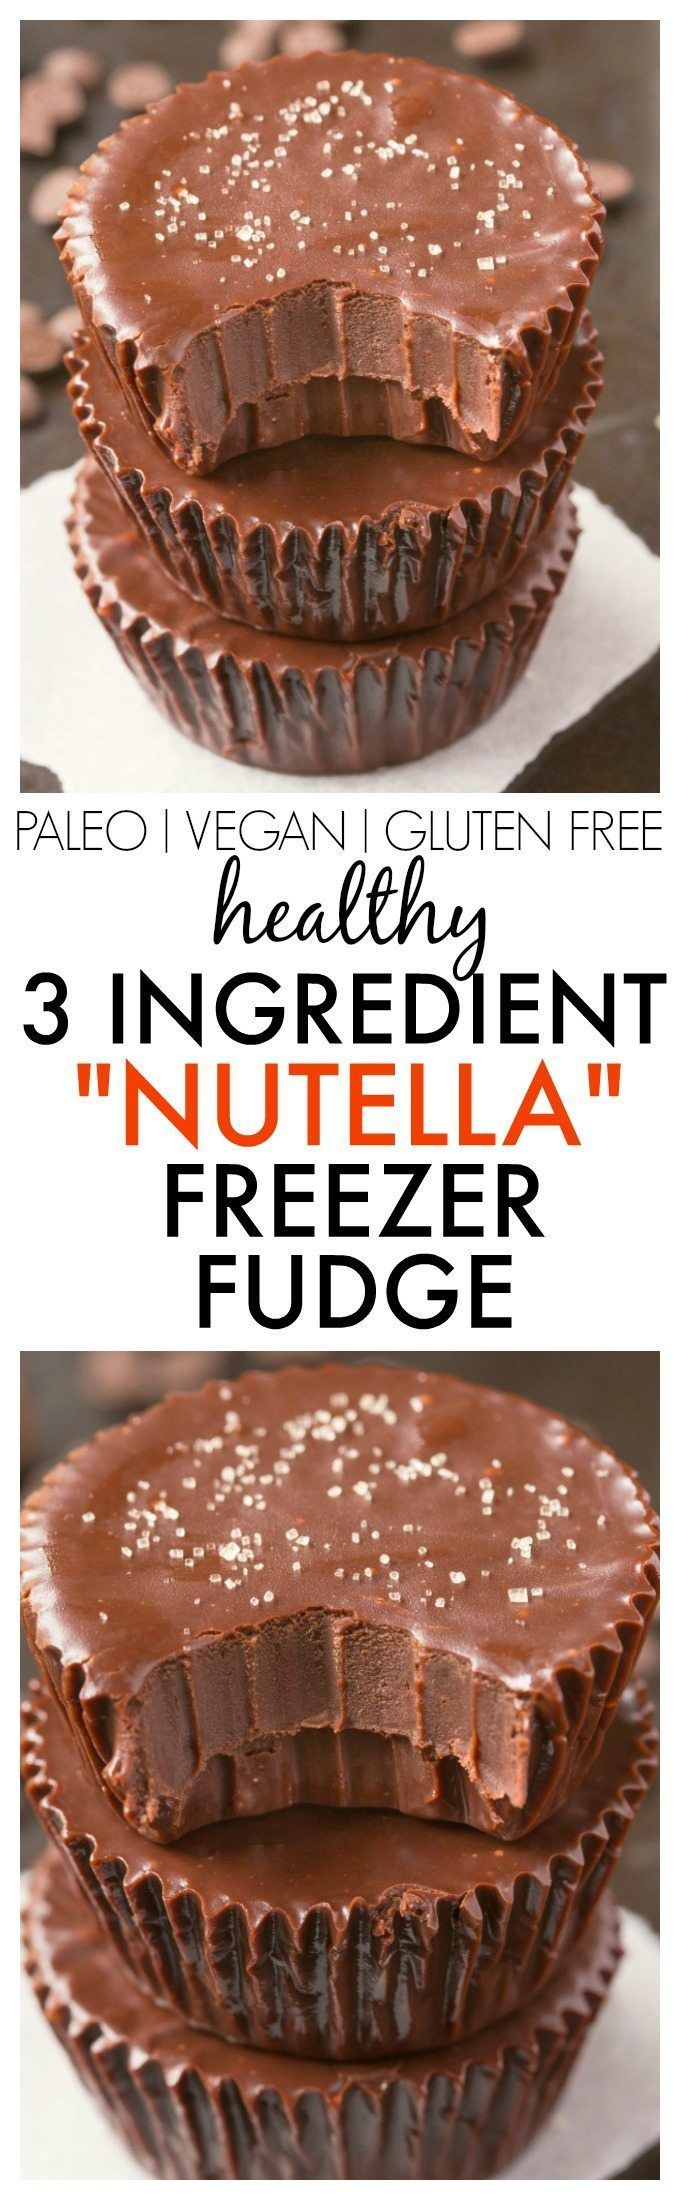 Healthy 3 Ingredient 'Nutella' Fudge Cups- Smooth, creamy and melt-in-your mouth fudge which takes minutes and has NO dairy,